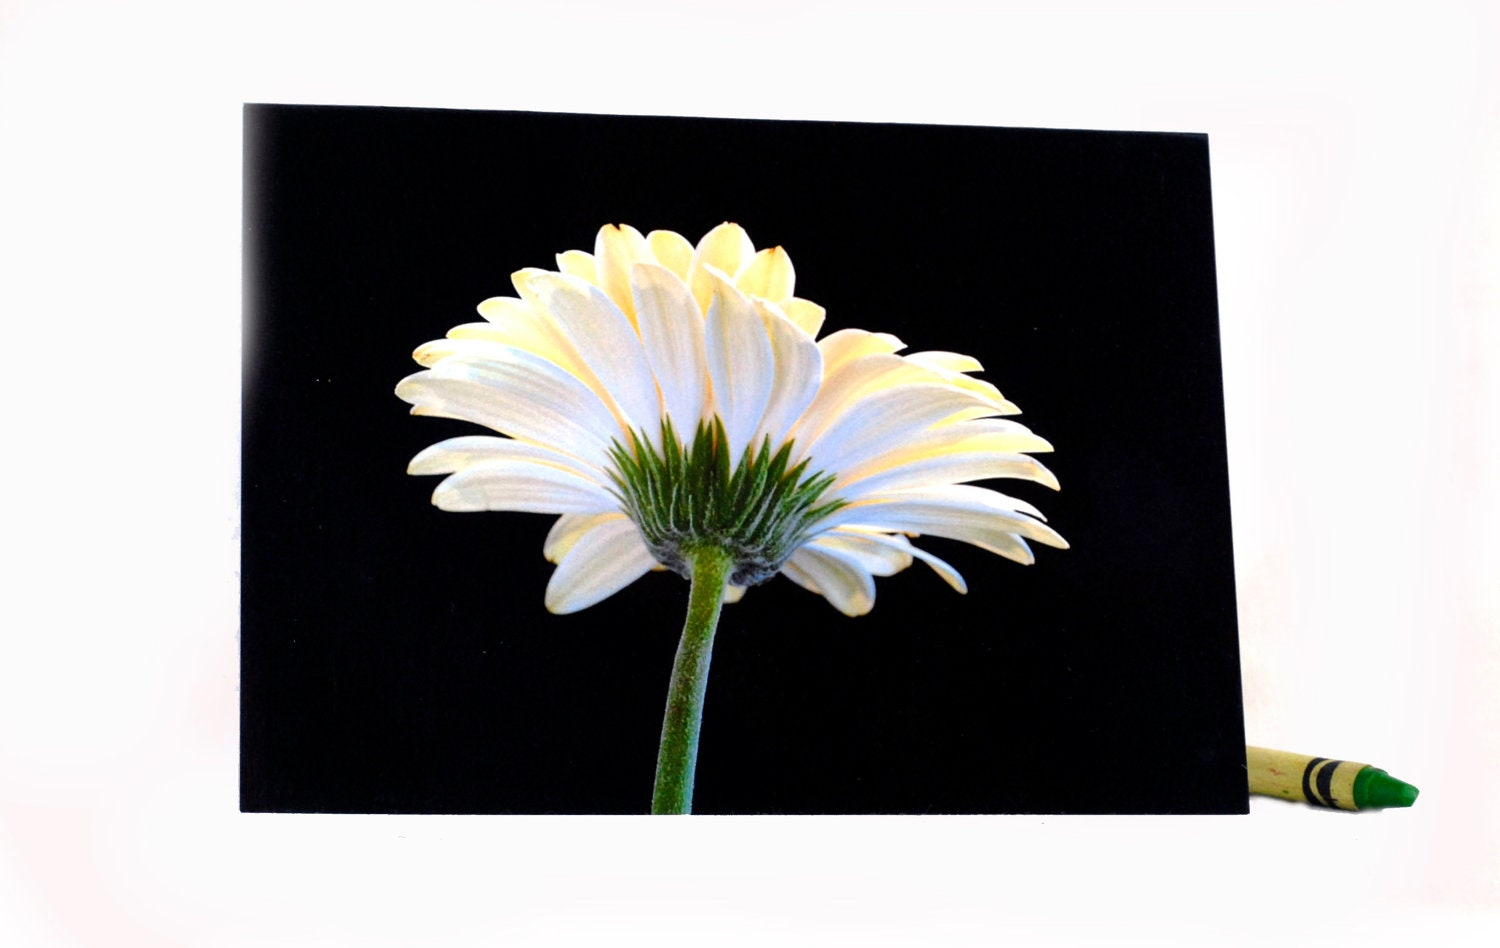 Gerber Beauty-Blank Photography Note Cards, Keepsake Cards, White Flower Art. - ONEMAGICALMOMENT